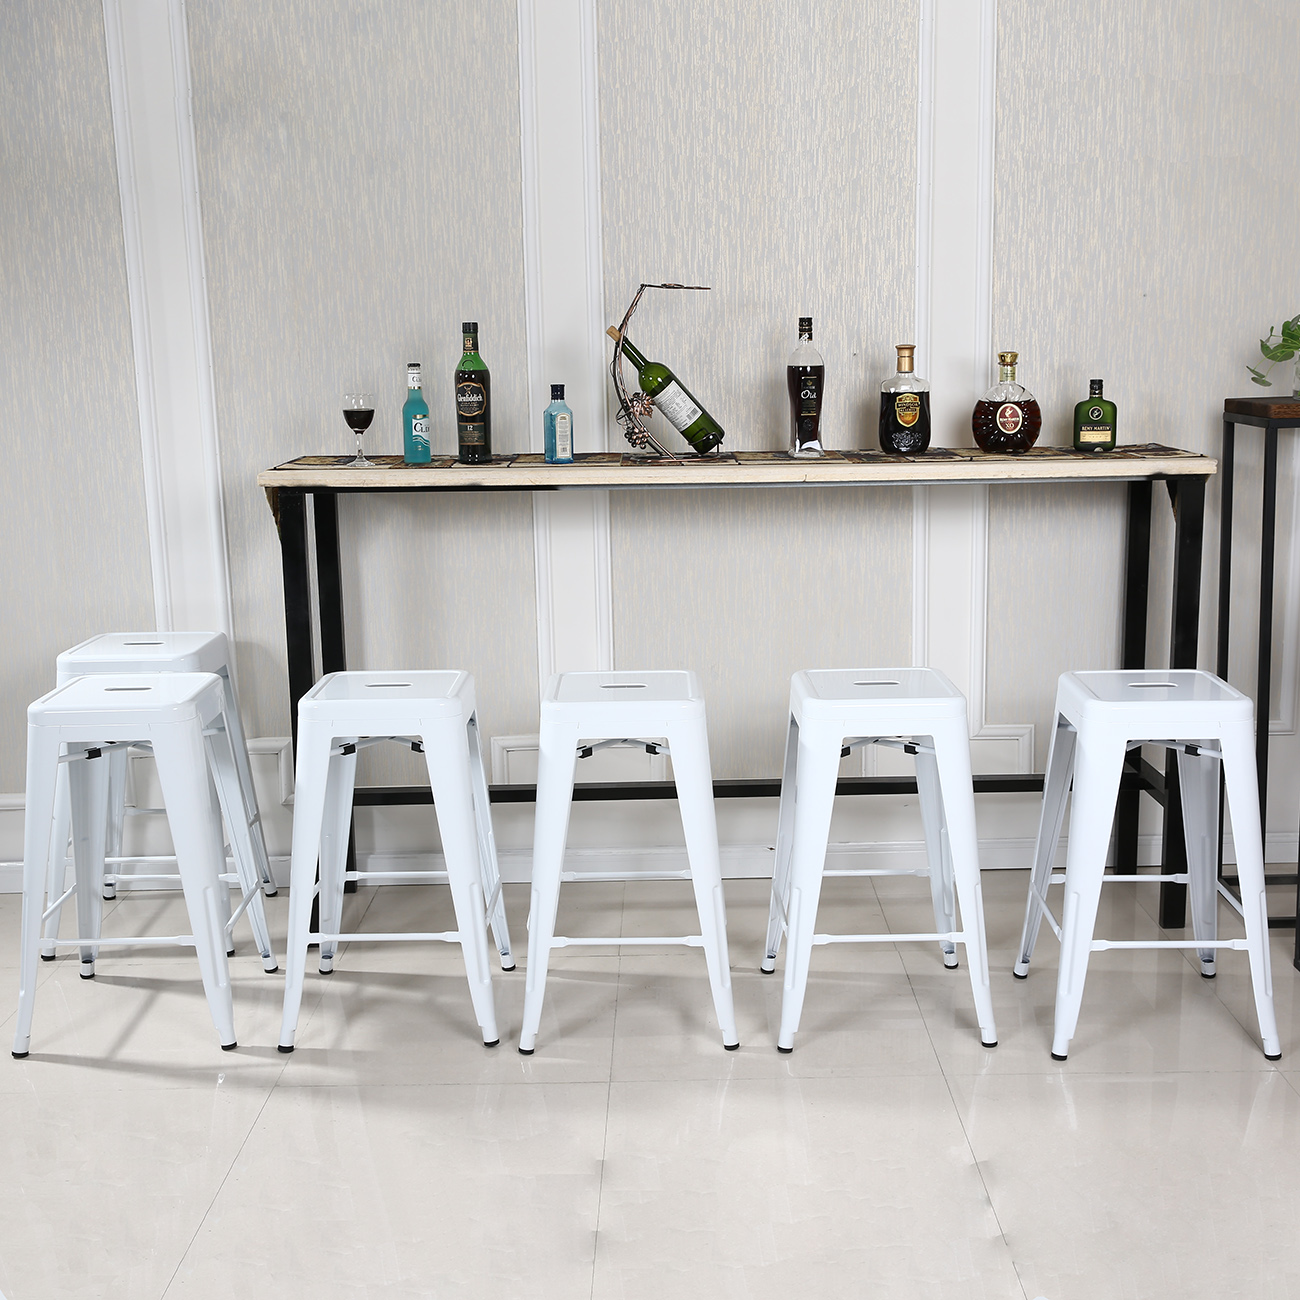 Metal Bar Stools Set Of 6 Vintage Antique Style Counter